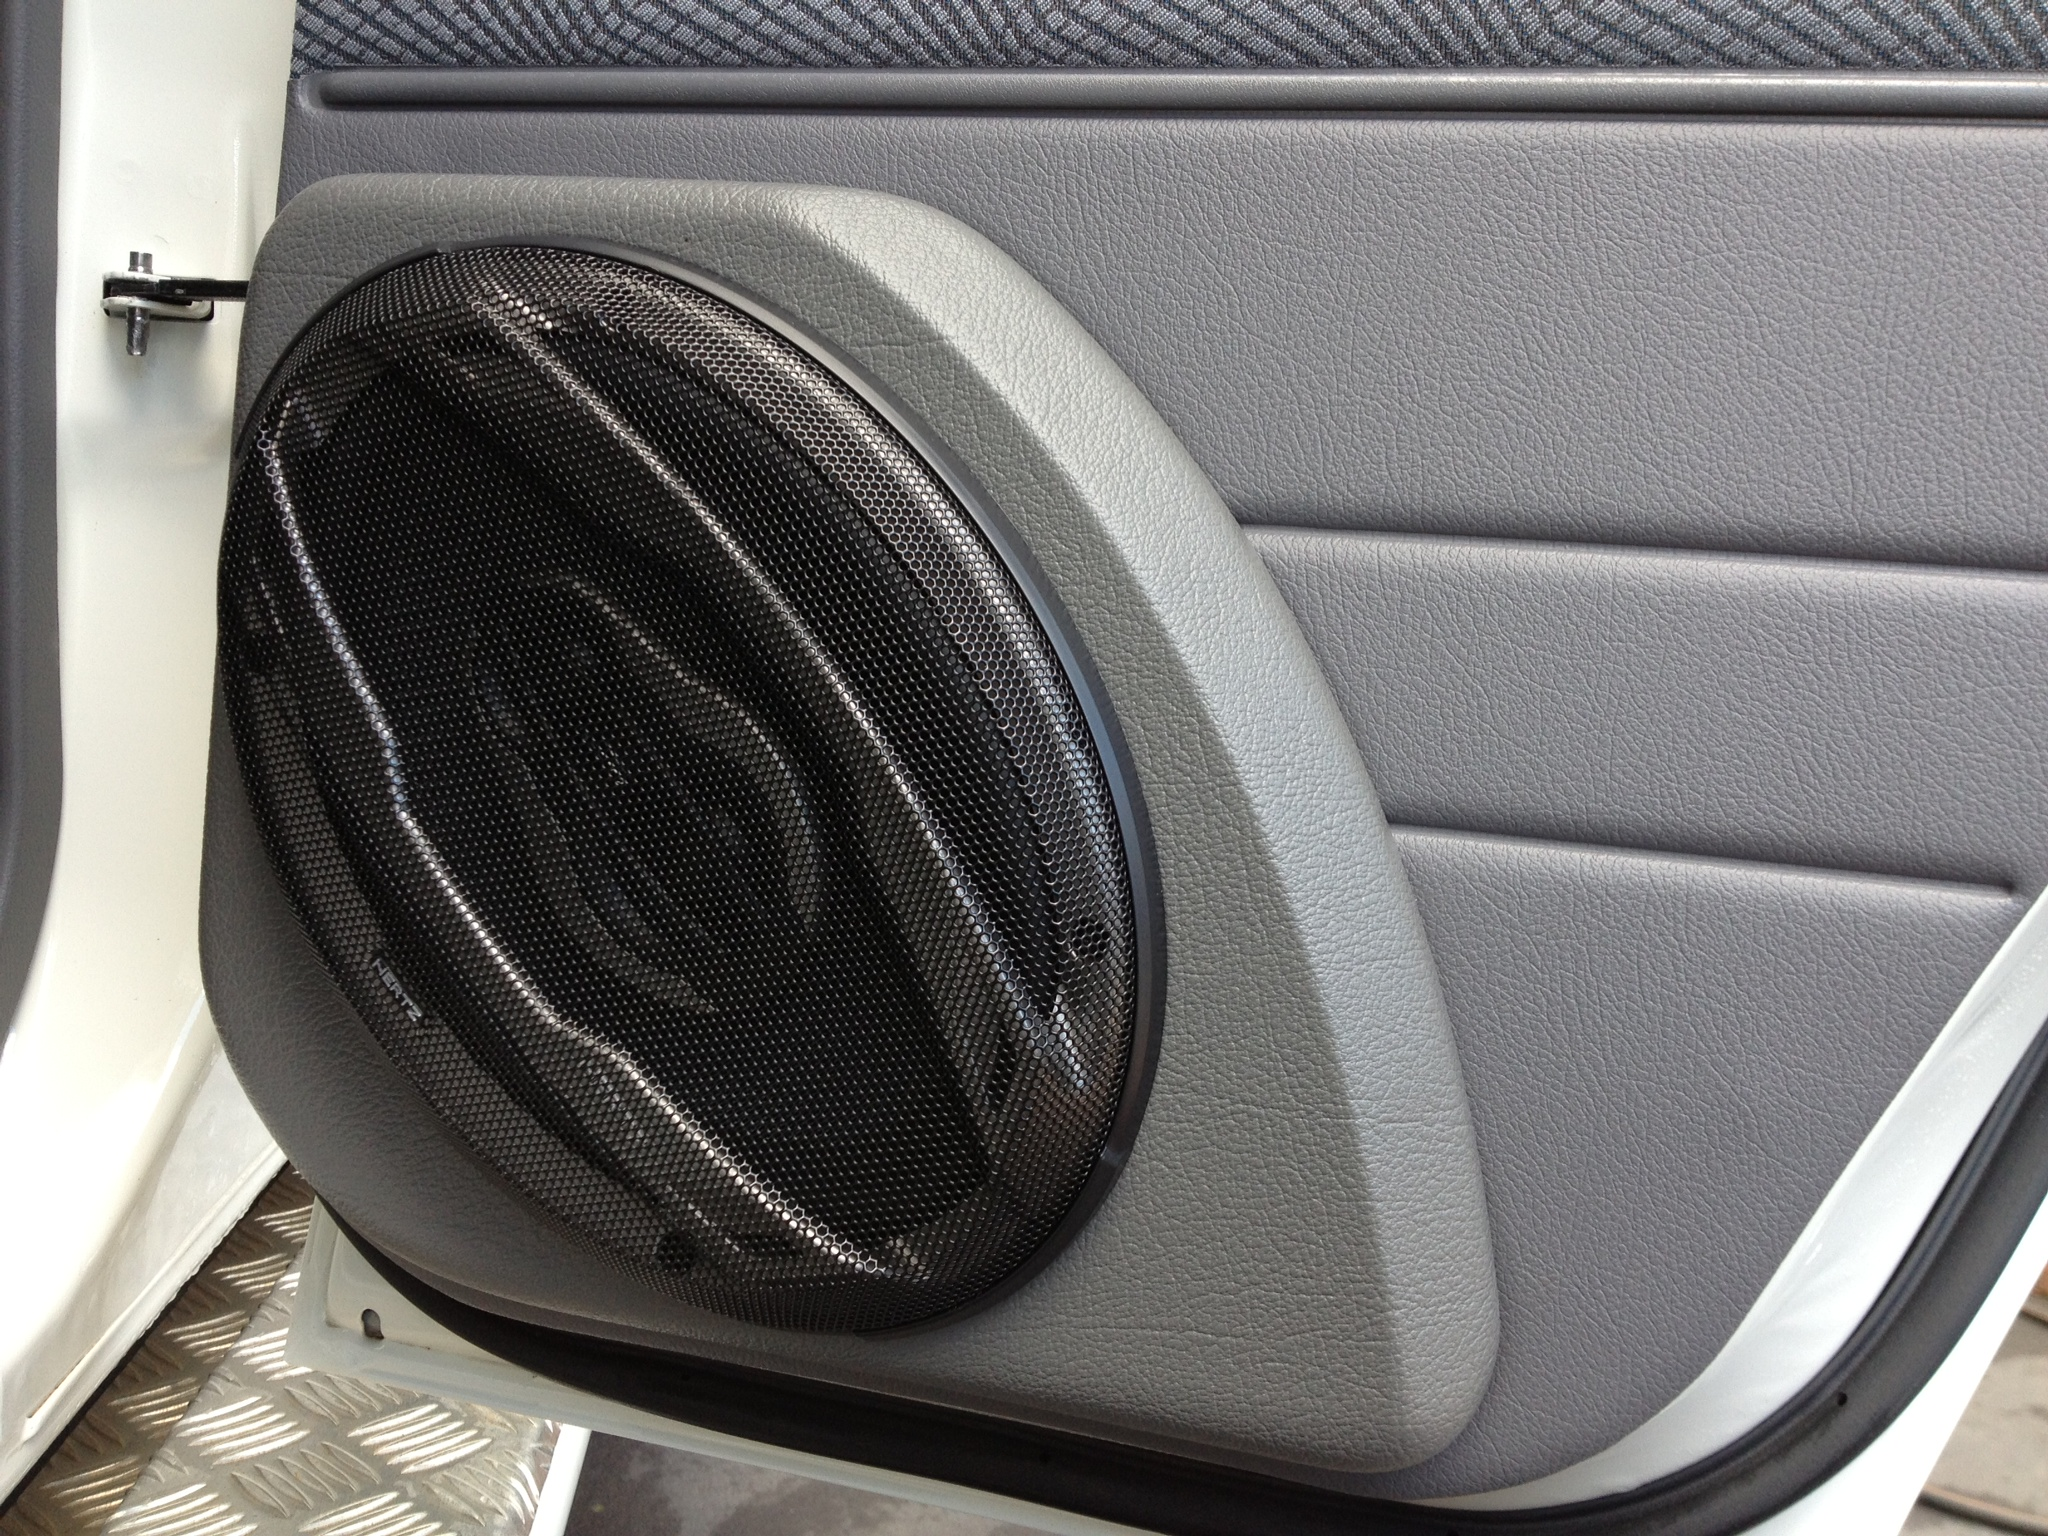 #746D57   Cairns Customs   Car Sound Highly Rated 9379 Air Conditioning Units Cairns wallpapers with 2048x1536 px on helpvideos.info - Air Conditioners, Air Coolers and more